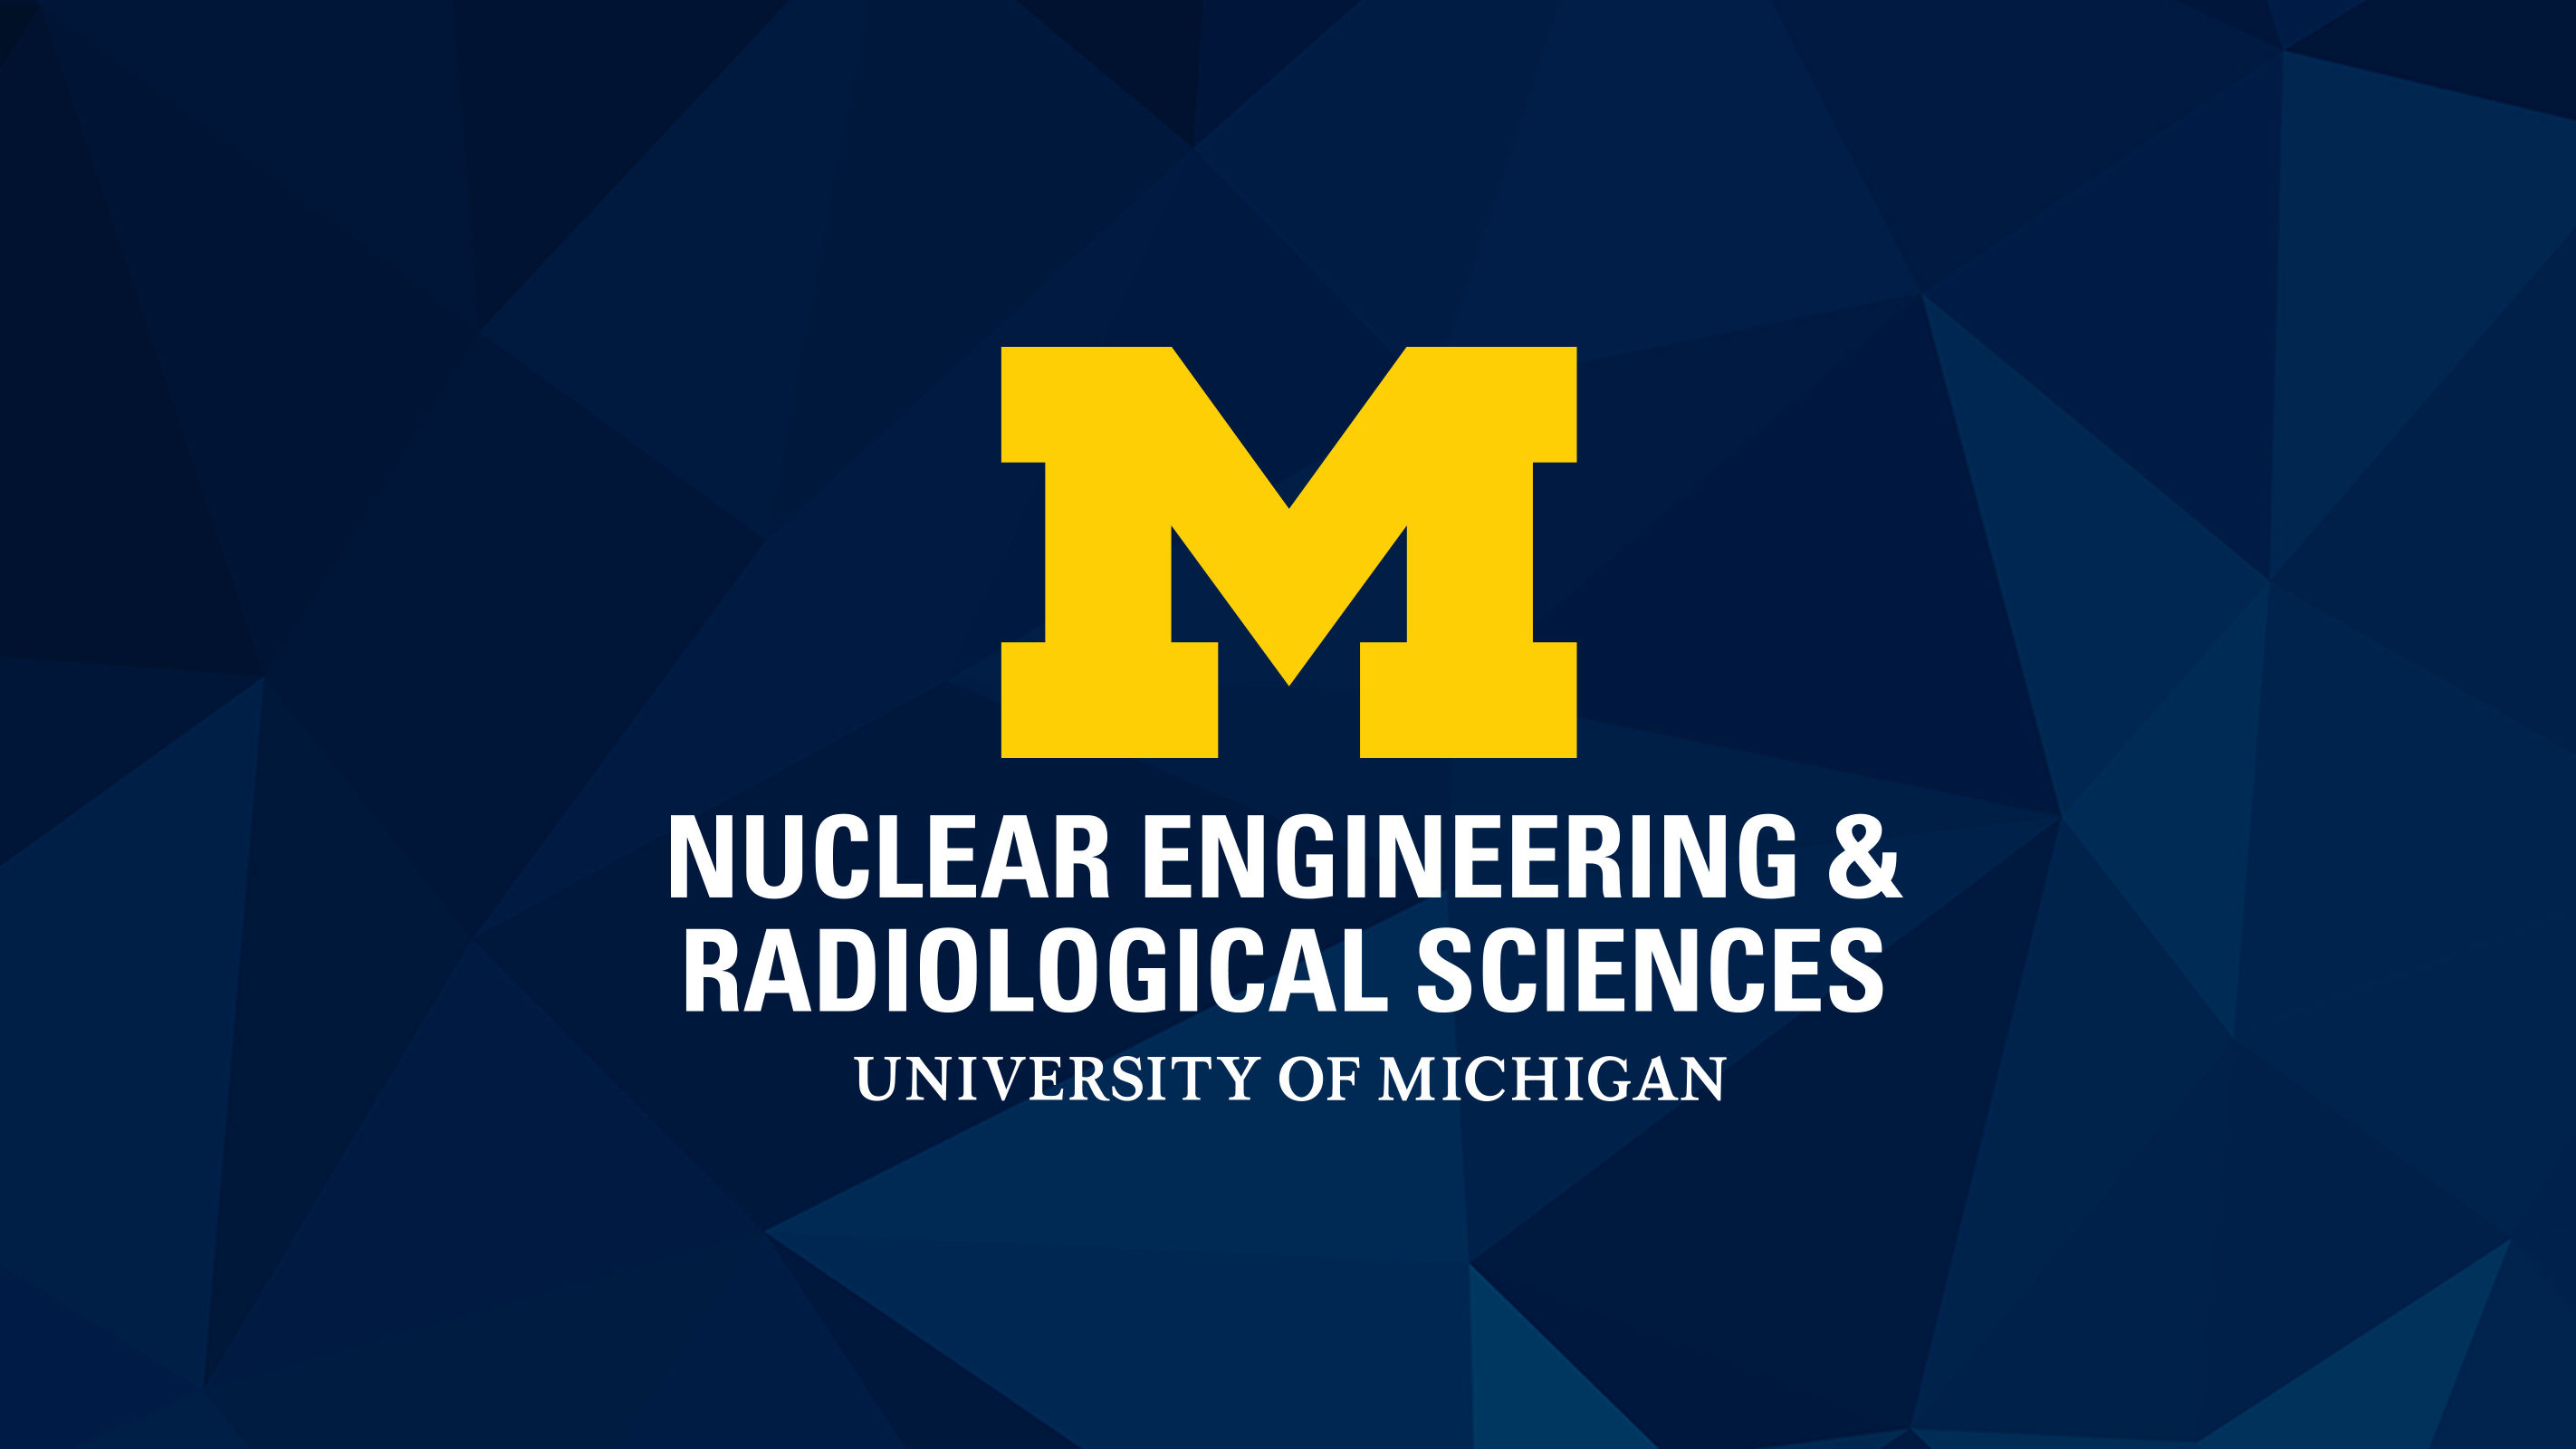 Nuclear Engineering & Radiological Sciences